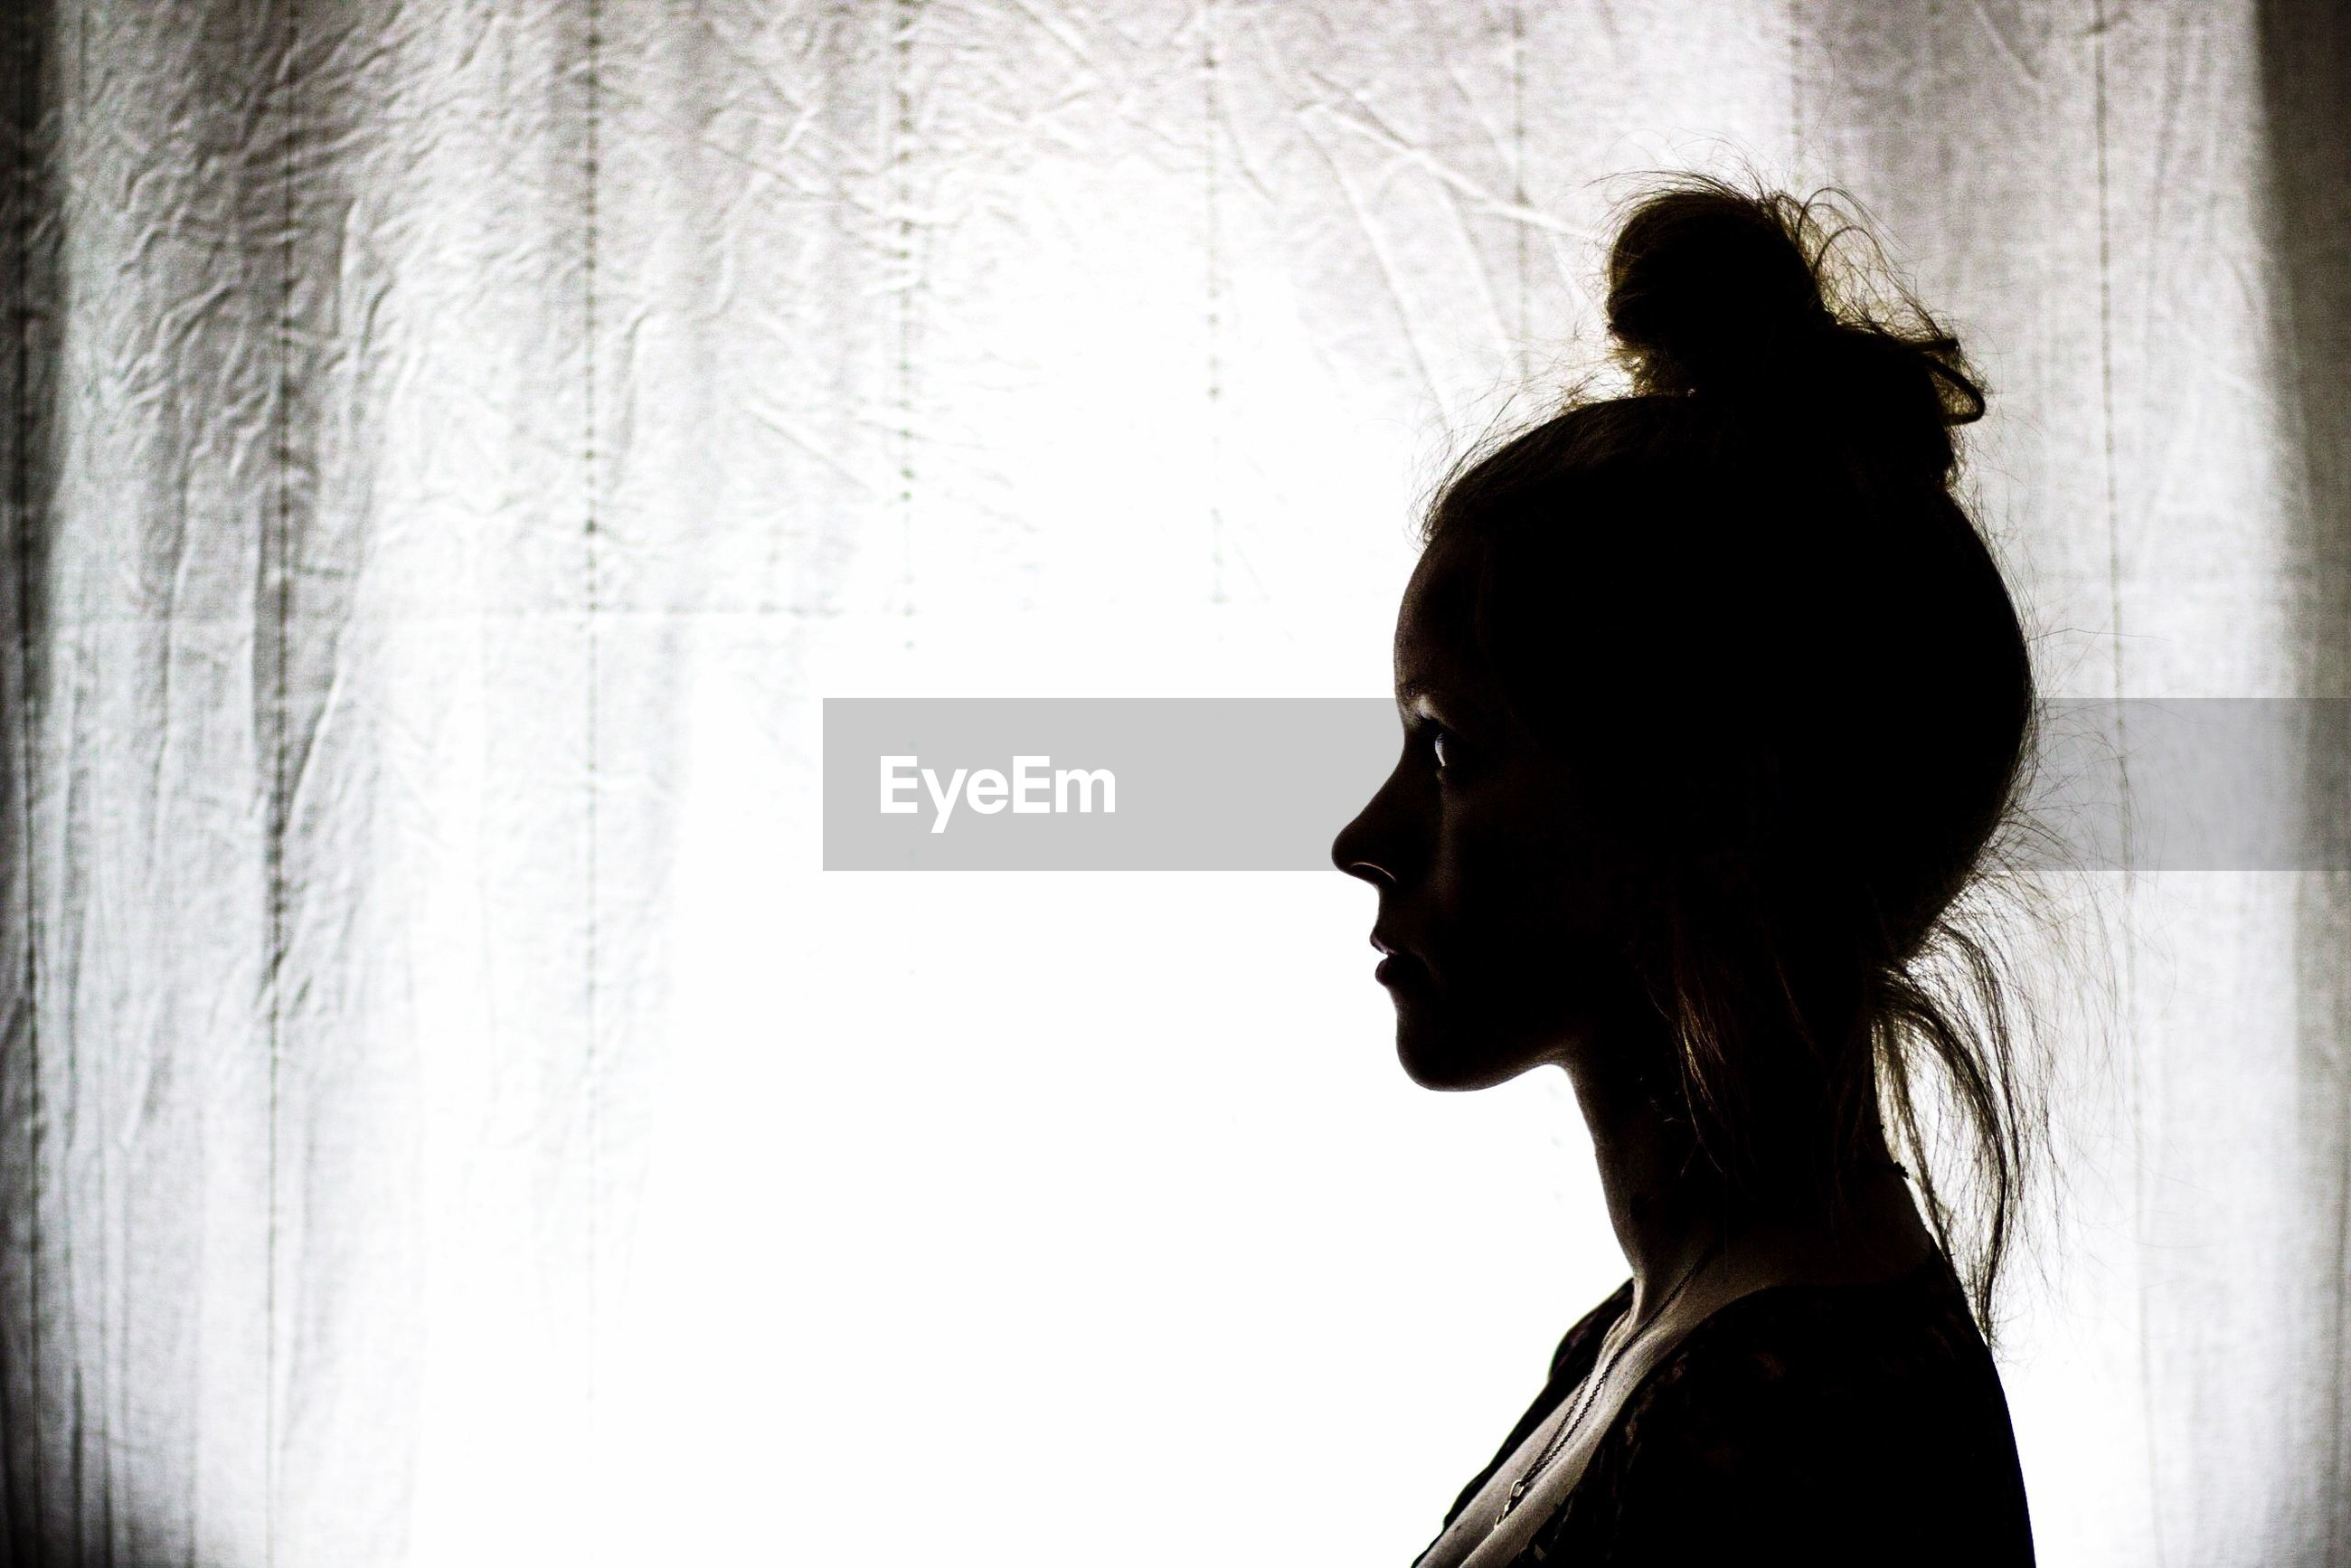 Profile view of thoughtful young woman standing by window curtain